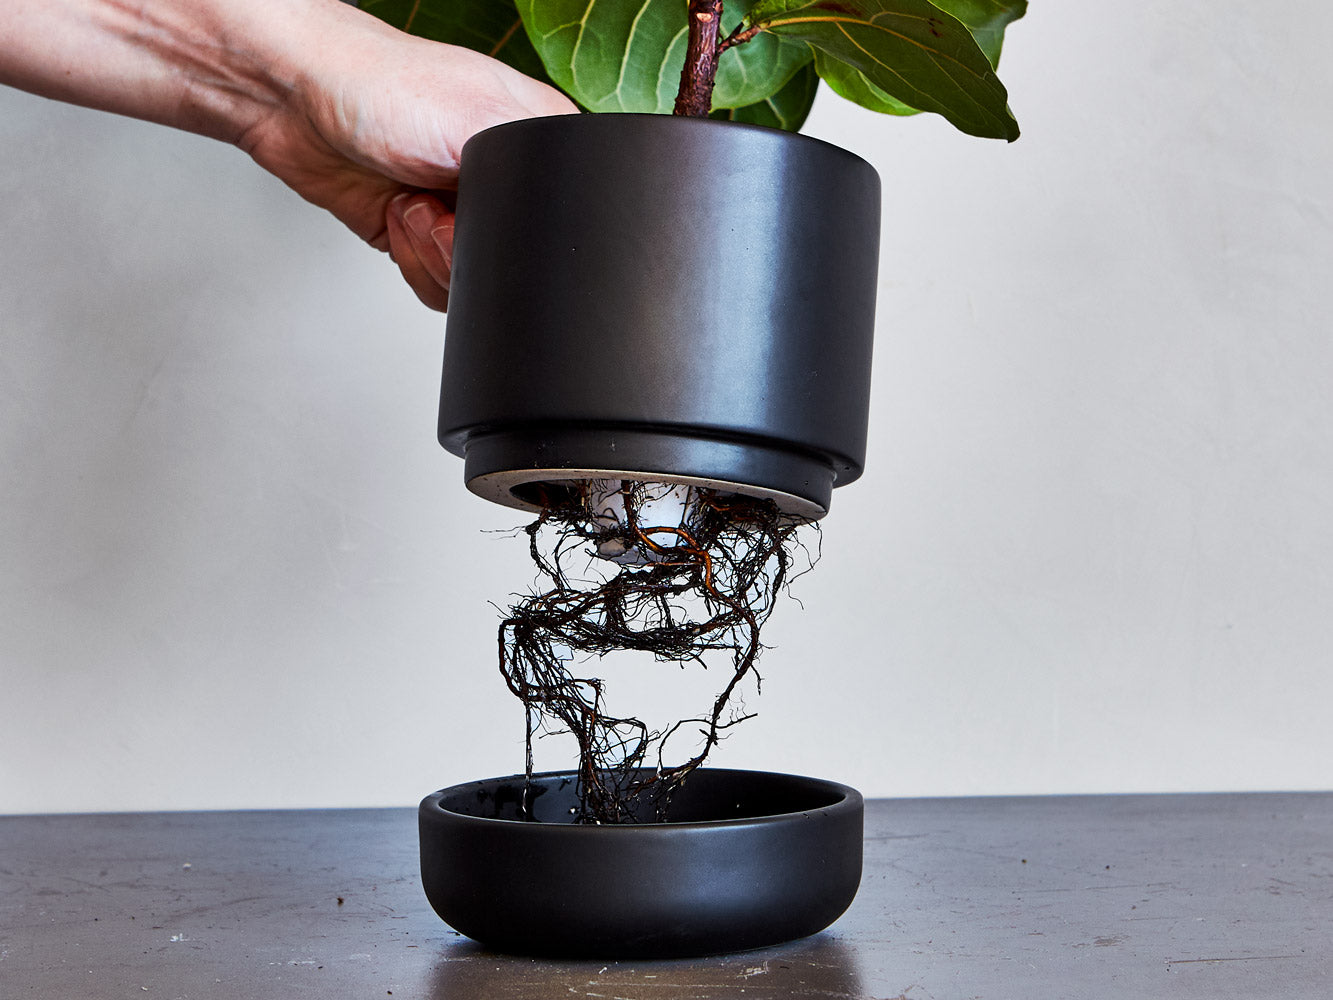 Roots in a self watering planter